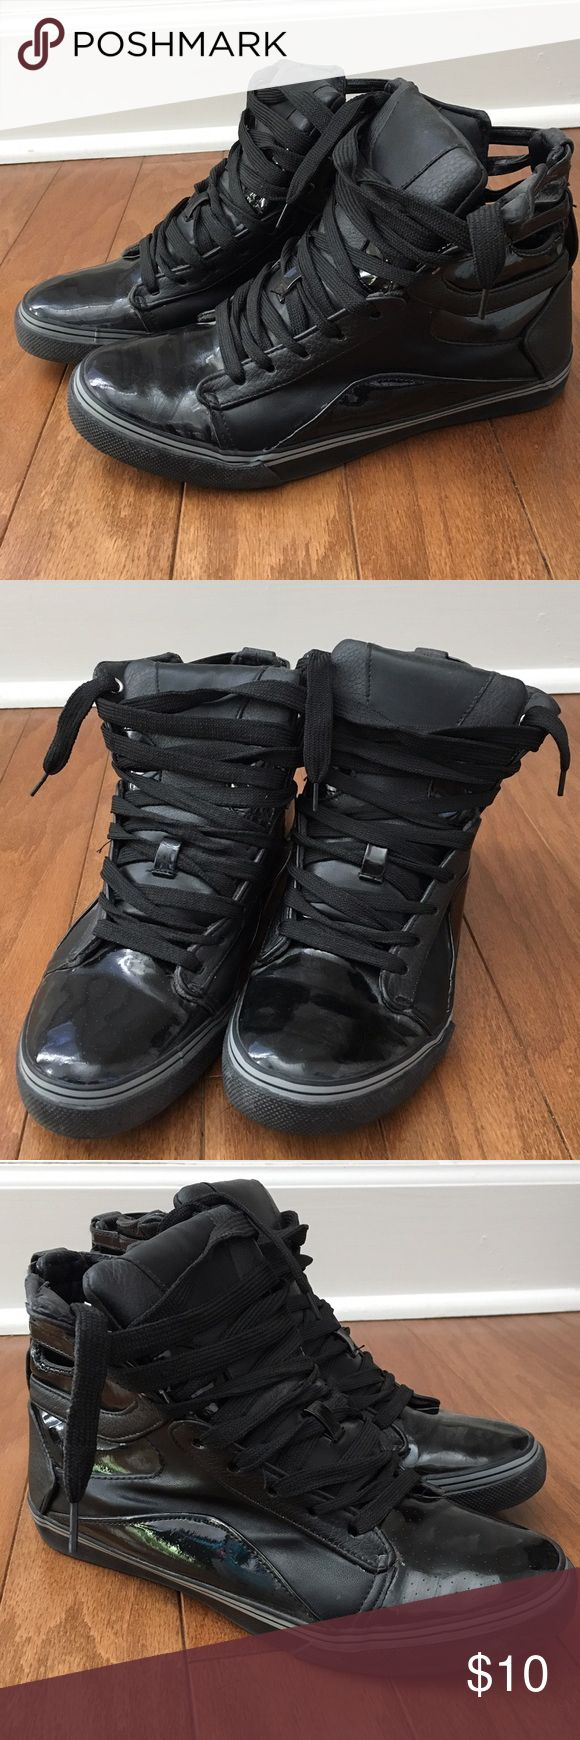 Balera Hightop Sneaker Women's Size 8 Balera Women's Size 8 Black hip hop dance sneaker. Hardly worn only danced in them a few times and wore them around town a few times. Practically brand new. Comfortable and stylish to wear even with workout attire or sweats and a t-shirt. Cleaning out my closet and just don't really wear them anymore. Make me an offer! Balera Shoes Athletic Shoes